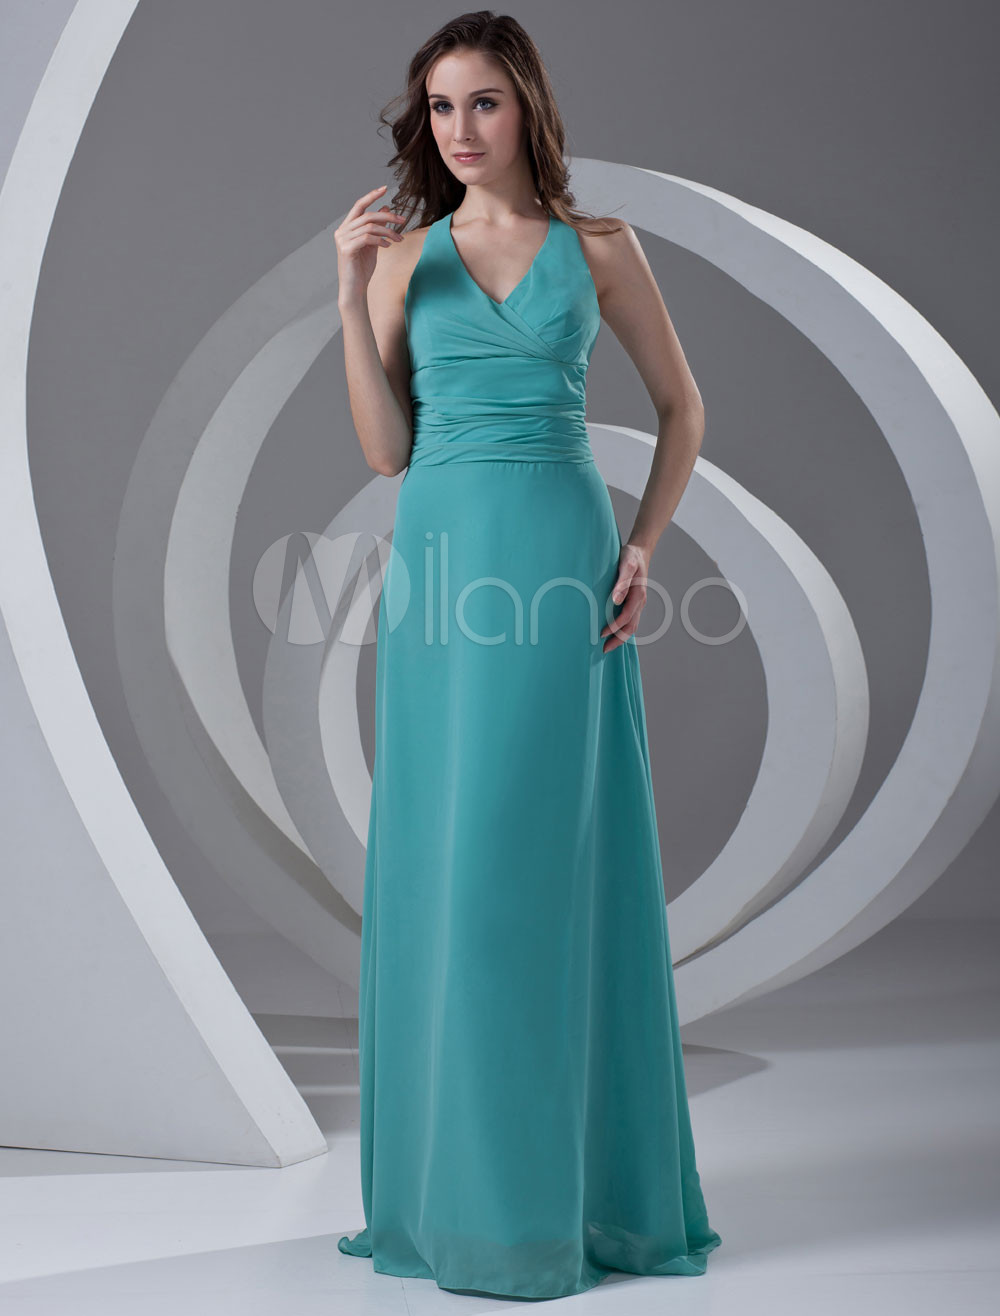 Halter Chiffon Hunter Green Pretty Bridesmaid Dress